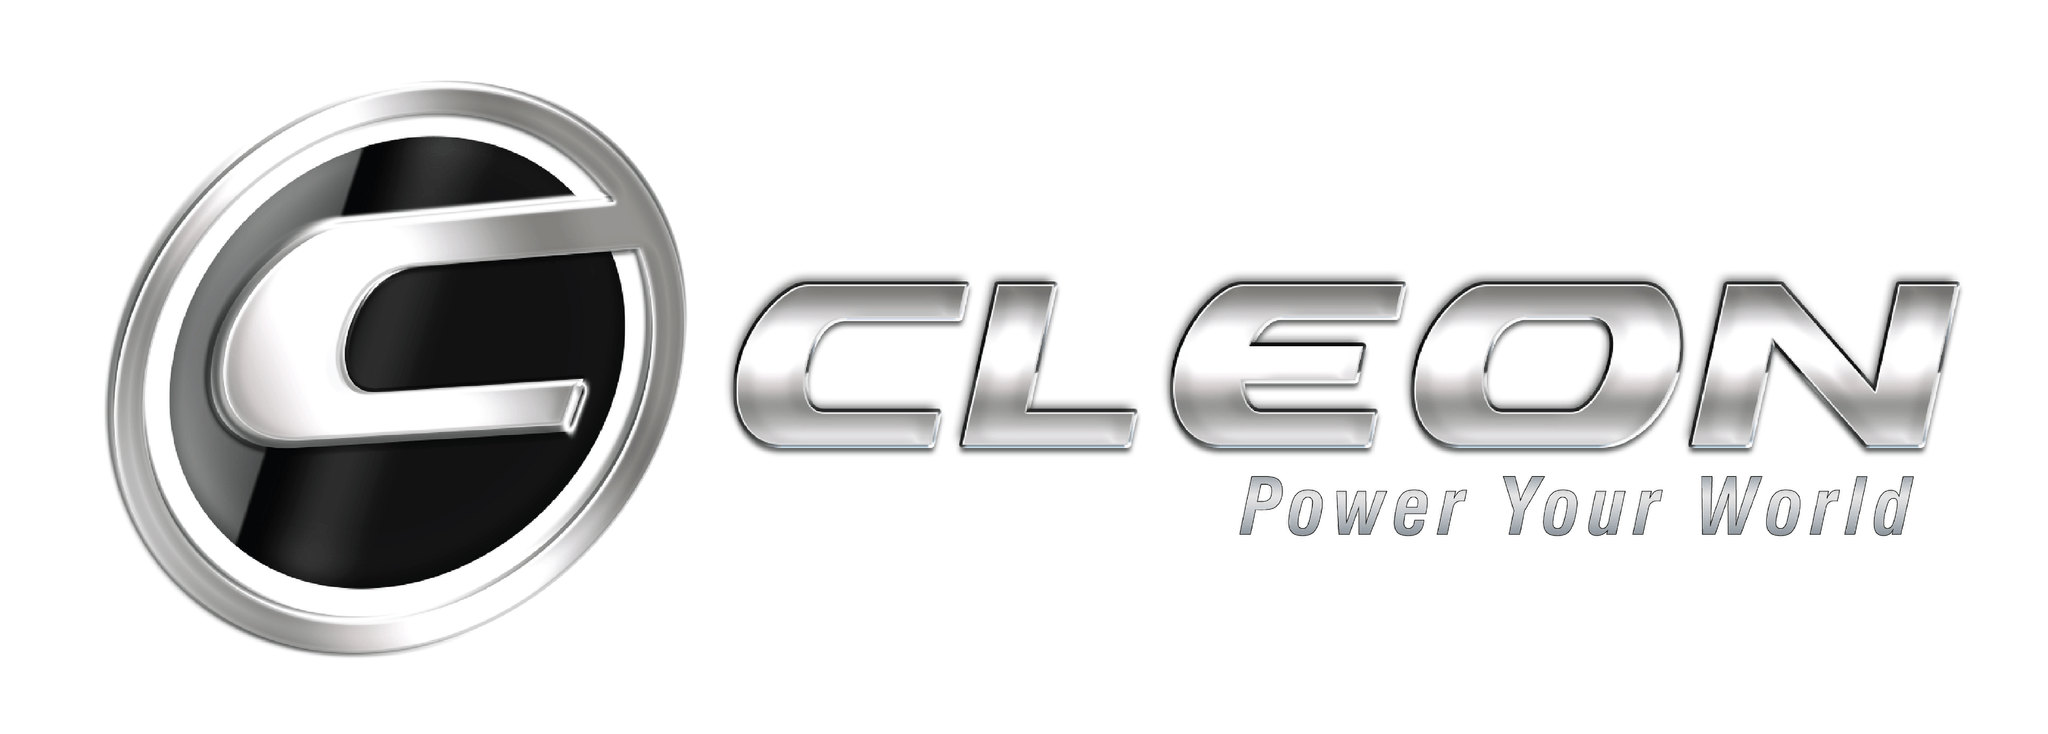 Cleon Powertech